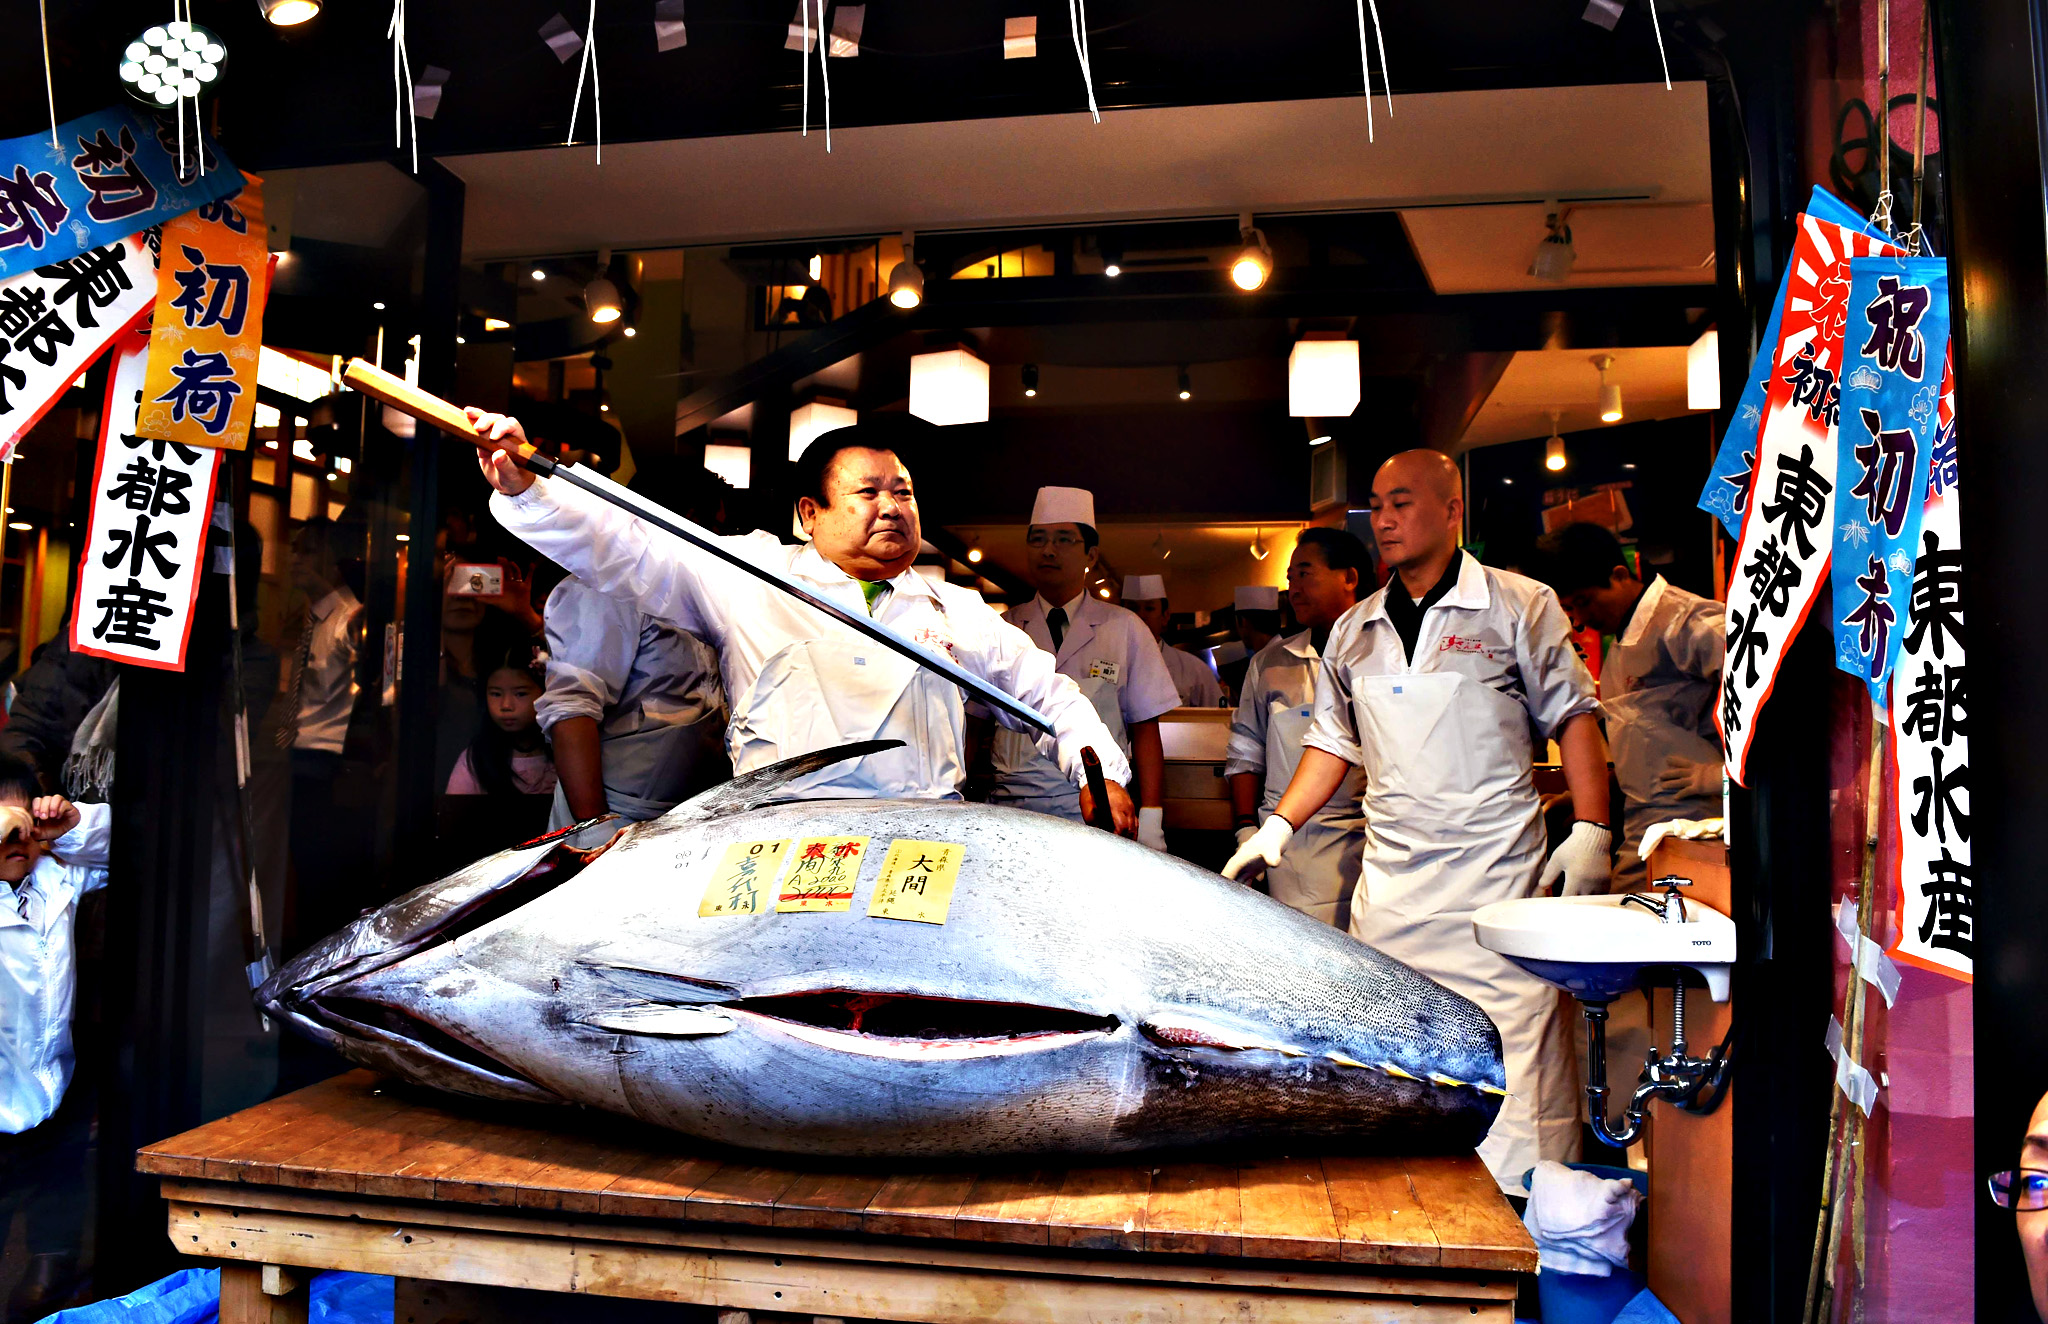 President of sushi restaurant chain Sushi-Zanmai, Kiyoshi Kimura (C) holds a long fish knife as he poses with a 200-kilogram bluefin tuna at his main restaurant near Tokyo's Tsukiji fish market on January 5, 2016. The bluefin tuna was traded at 117,000 USD (14 million yen) at the wholesale market on the first trading day of the new year. Tsukiji market will close its doors after 80 years followed by a new market opening in Toyosu this autumn.